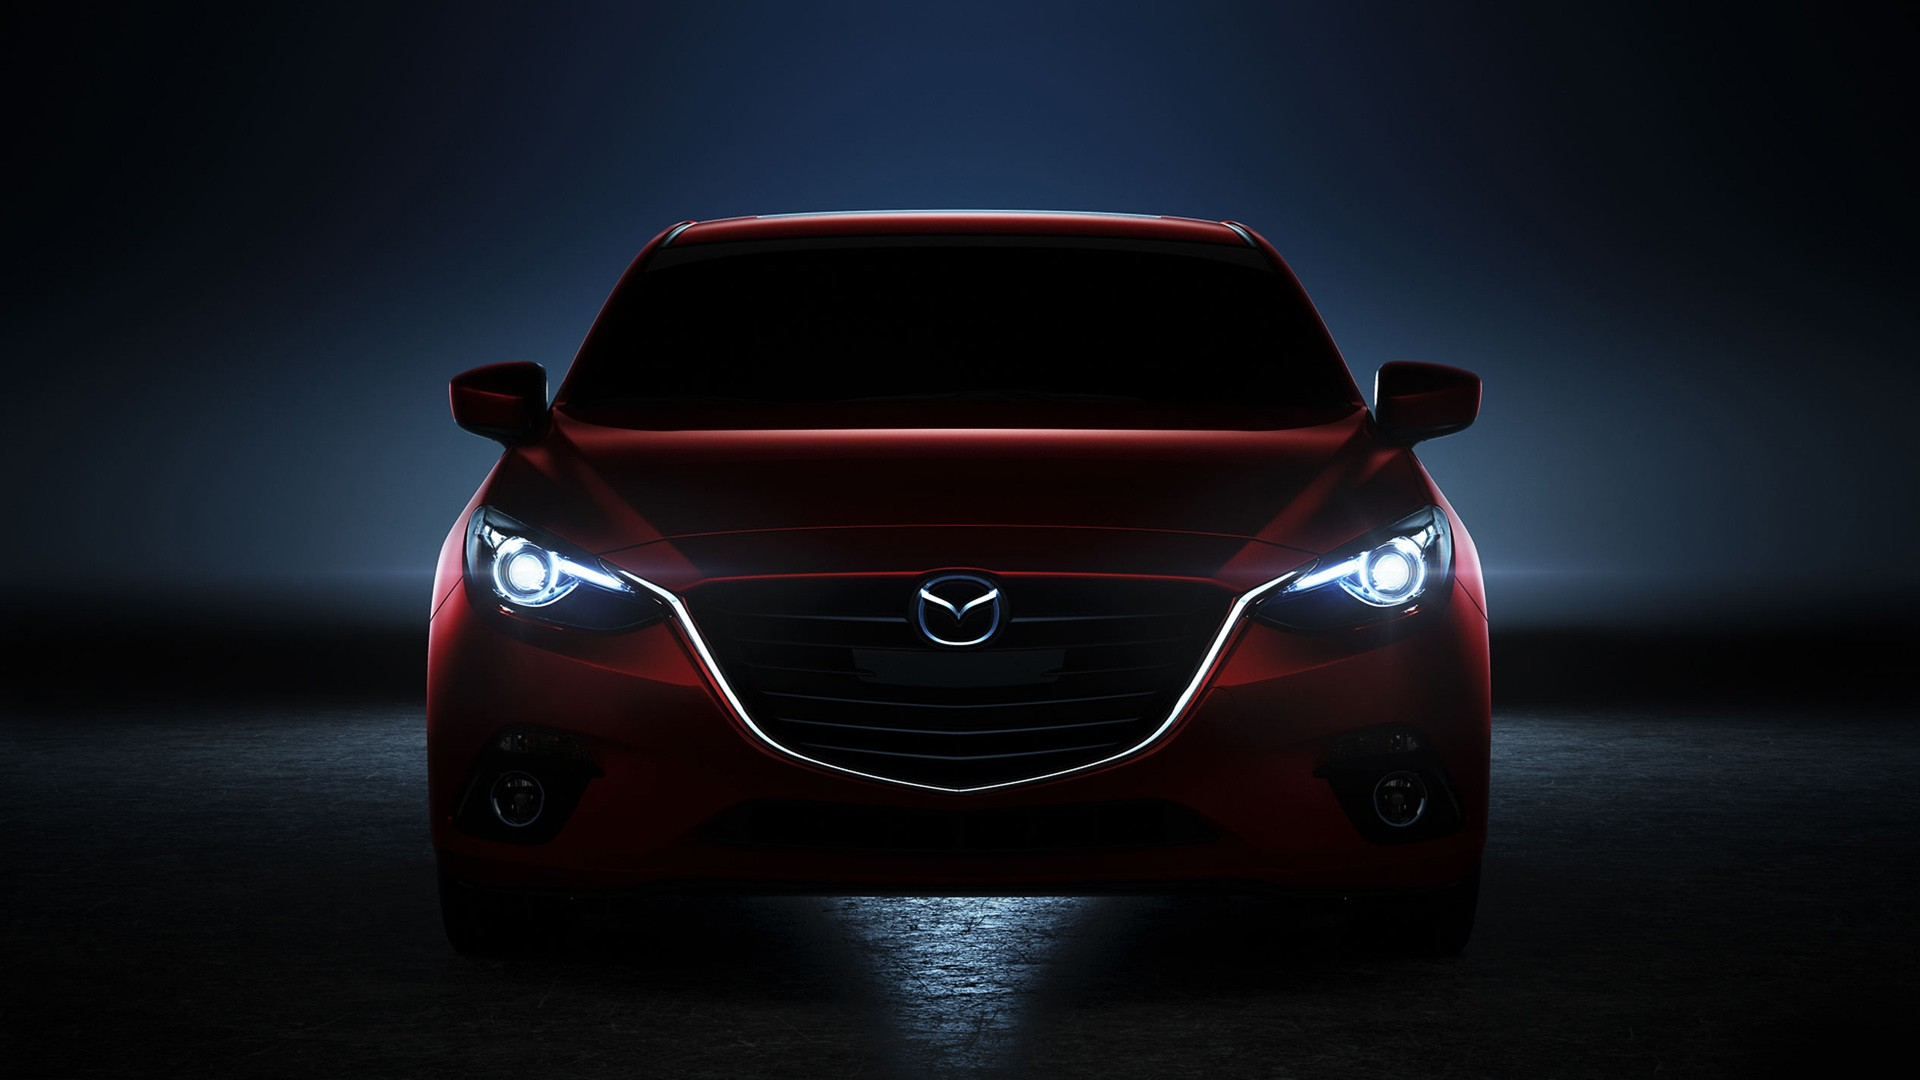 Mazdaspeed 3 Wallpapers - Wallpaper Cave